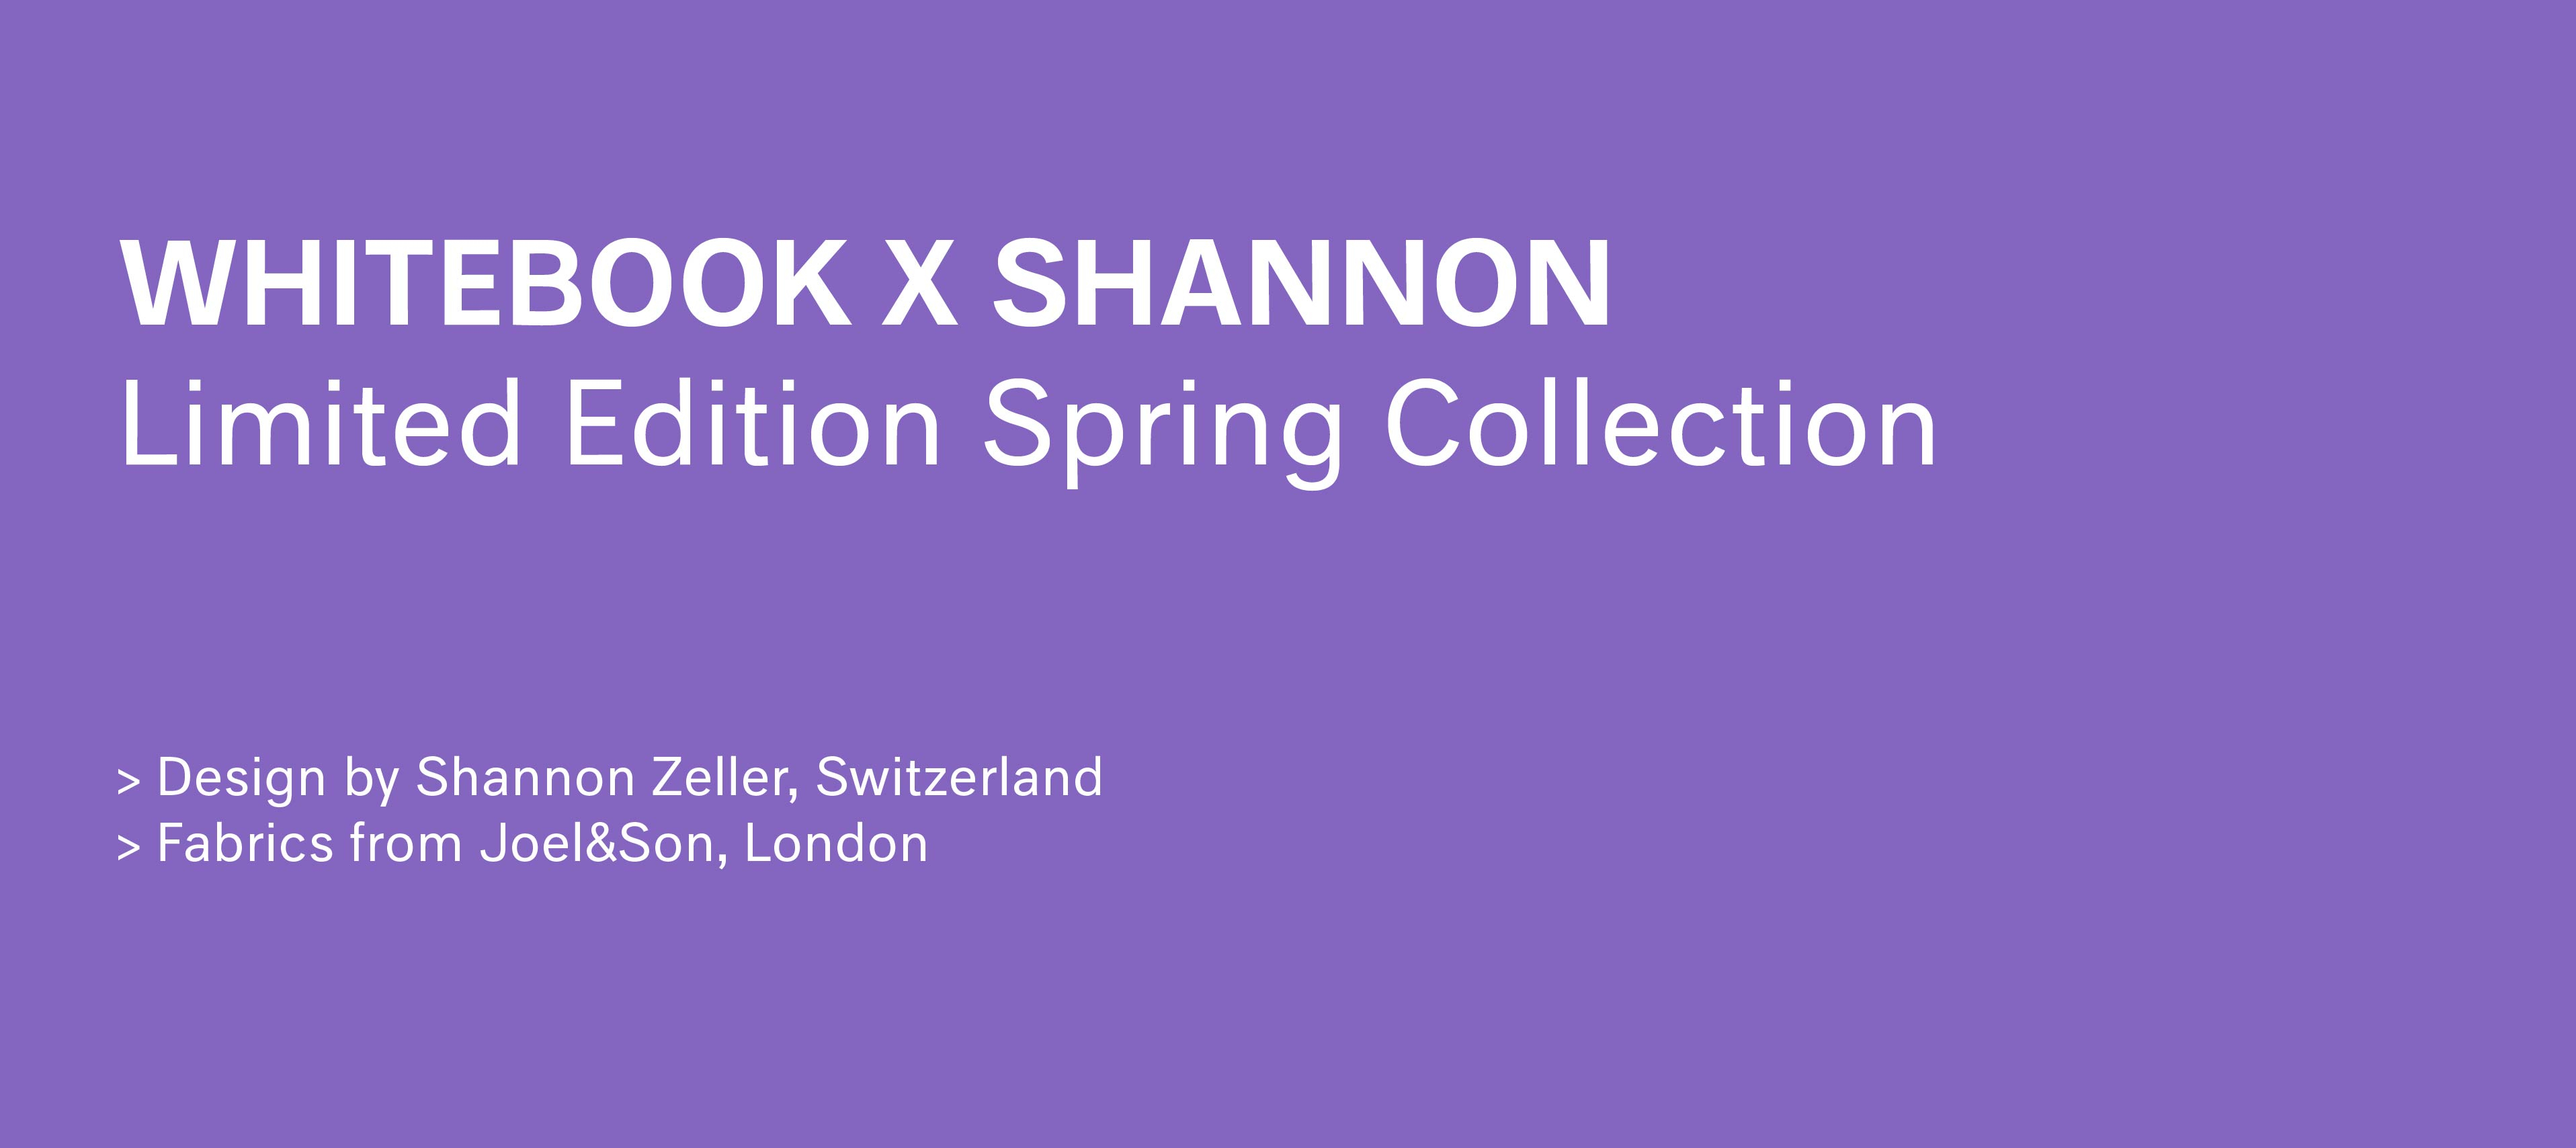 Whitebook X Shannon - Spring Collection